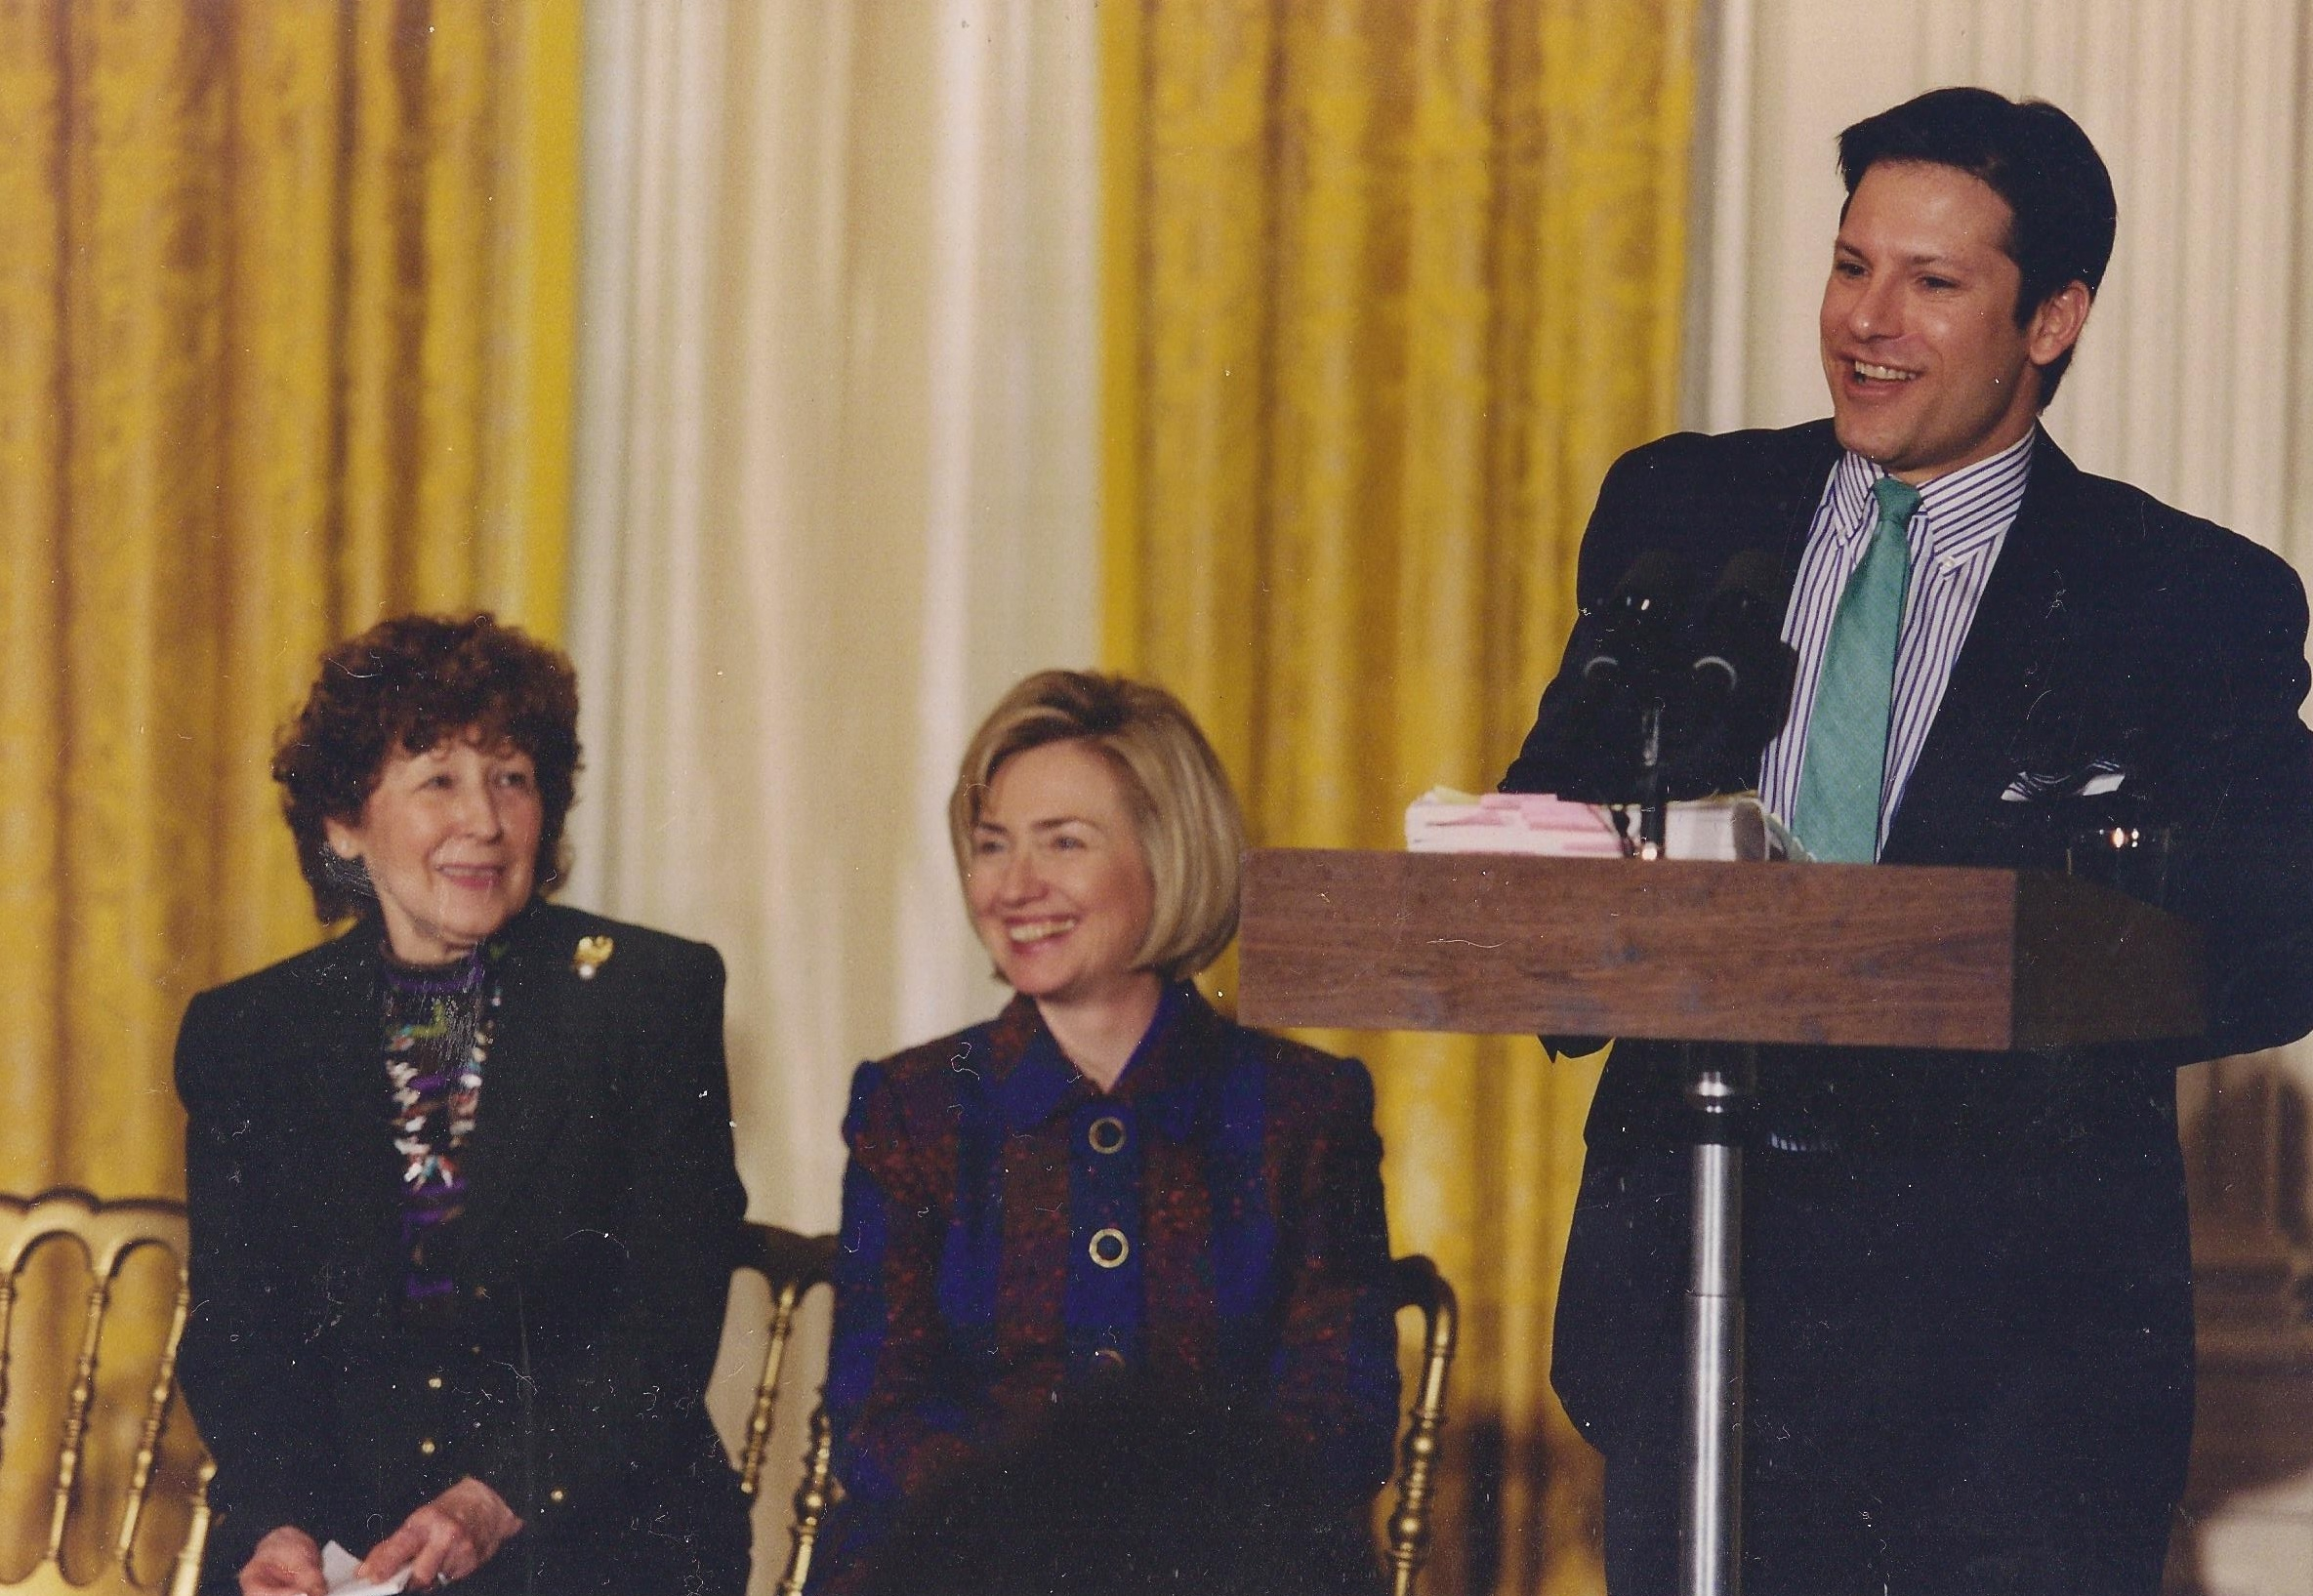 Hillary Clinton with Mary Regula, founder of the National First Ladies' Library at the East Room launch of the NFLL website, its historian Carl Anthony at the lectern. (WJCPL)